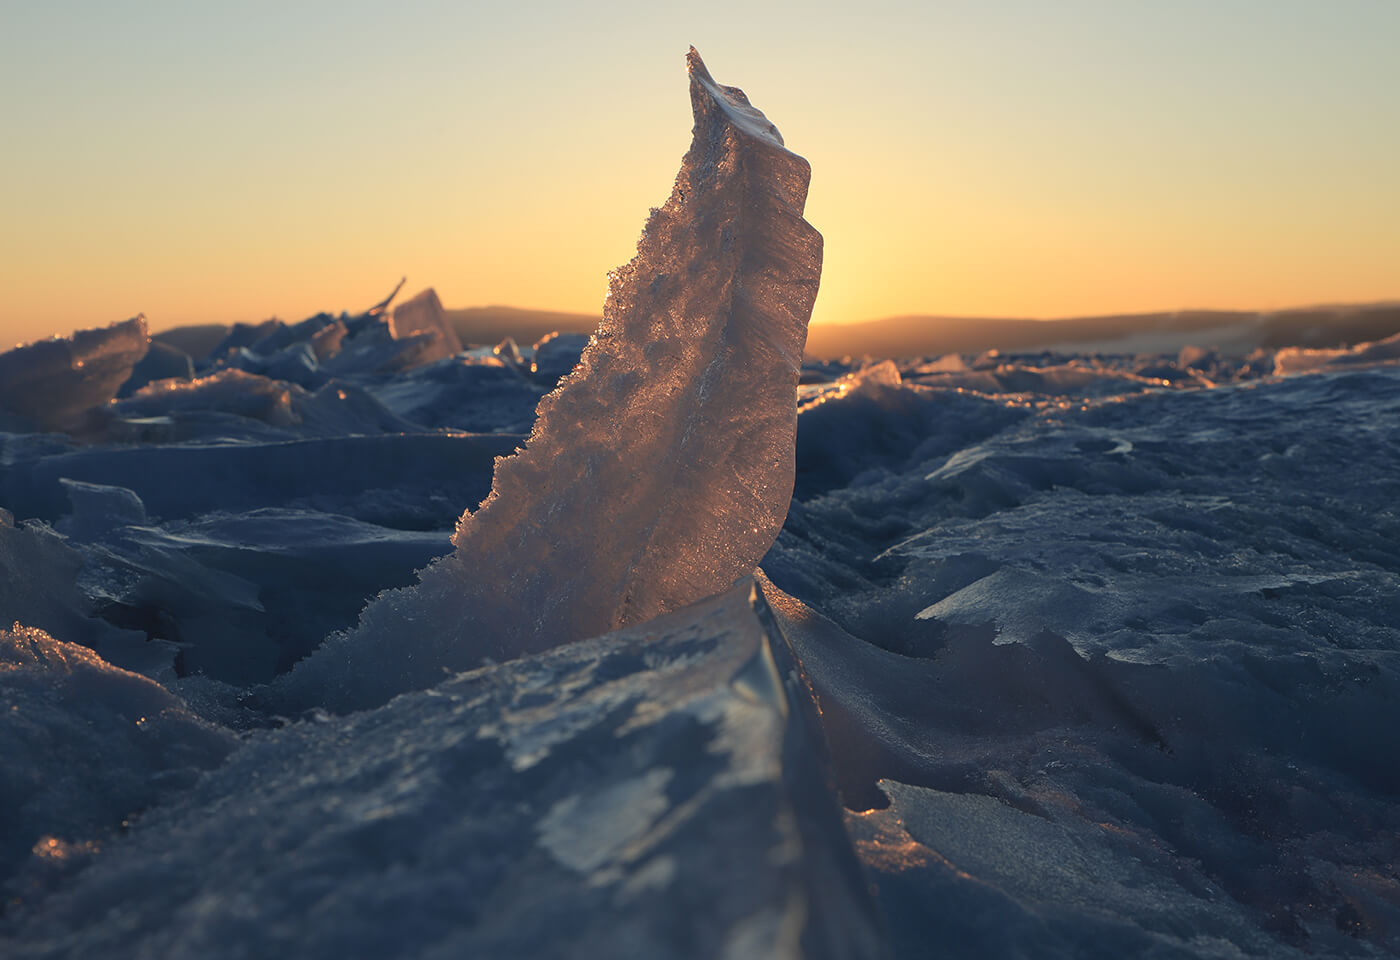 Shards of ice backlit by the setting sun, photographed with the Canon 6D Mark II DSLR camera